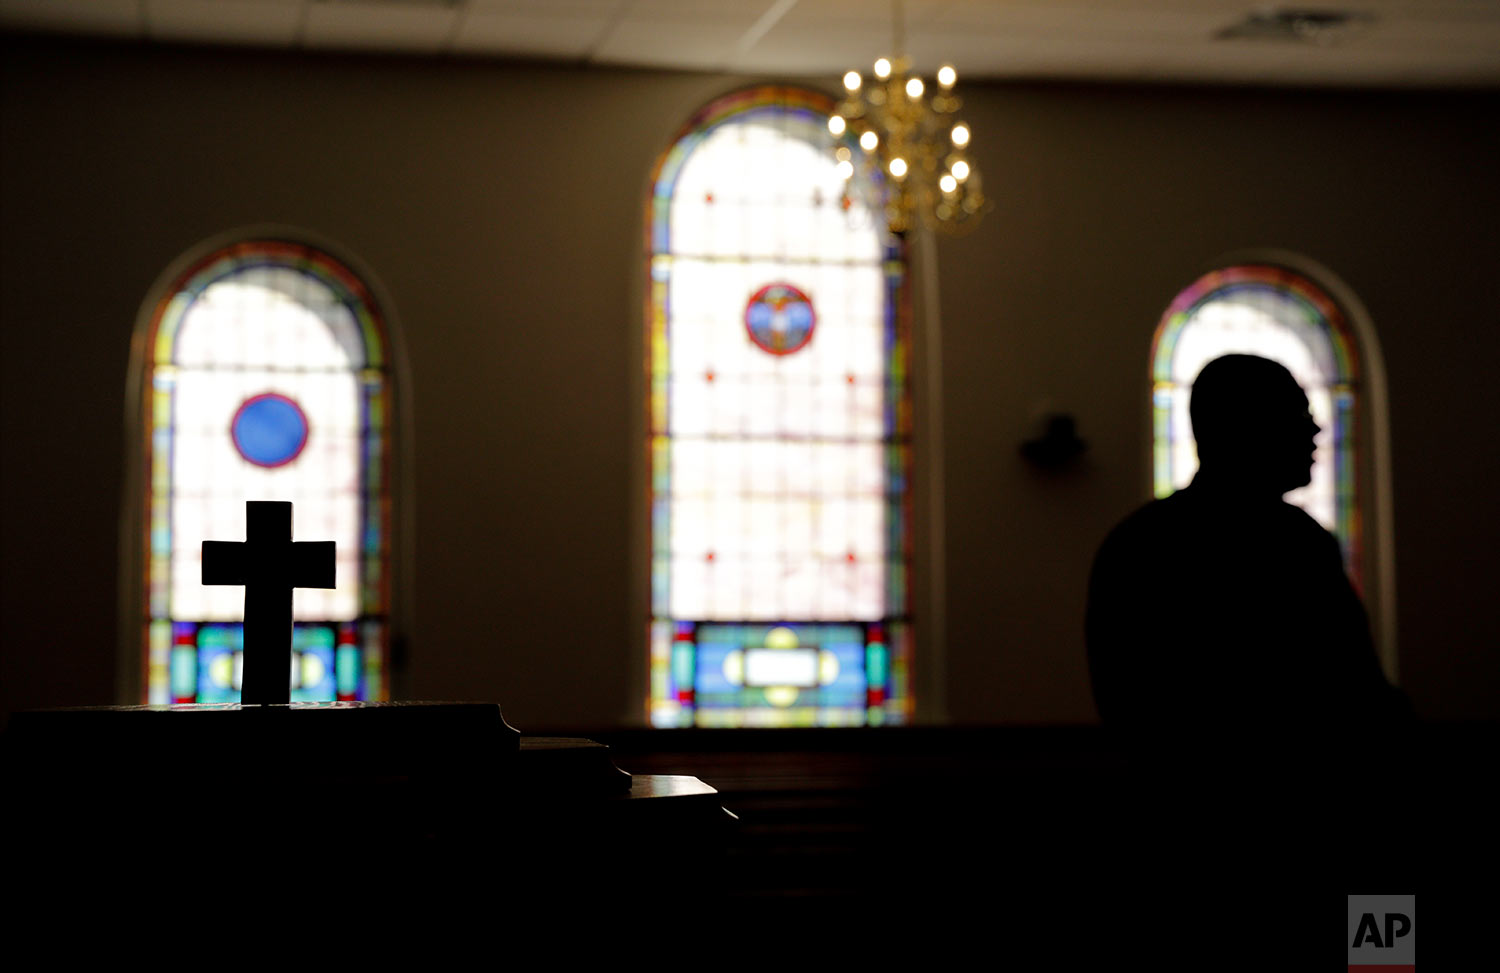 """A cross stands in New Hope United Methodist Church as Rev. Shawn Mitchell, a Navy combat veteran, stands in the sanctuary in Rowland, N.C., Friday, Oct. 27, 2017. """"Southern hospitality lives here in North Carolina. But now we're starting to see it less and less because you are free to be as racist as you want."""" He says President Trump has contributed to that environment. """"Everybody wants their family to be well fed. Everybody wants their family to be well educated. Your children shouldn't be better educated than mine because they're white and mine are black or because you have more money in the bank than I do."""" (AP Photo/David Goldman)"""